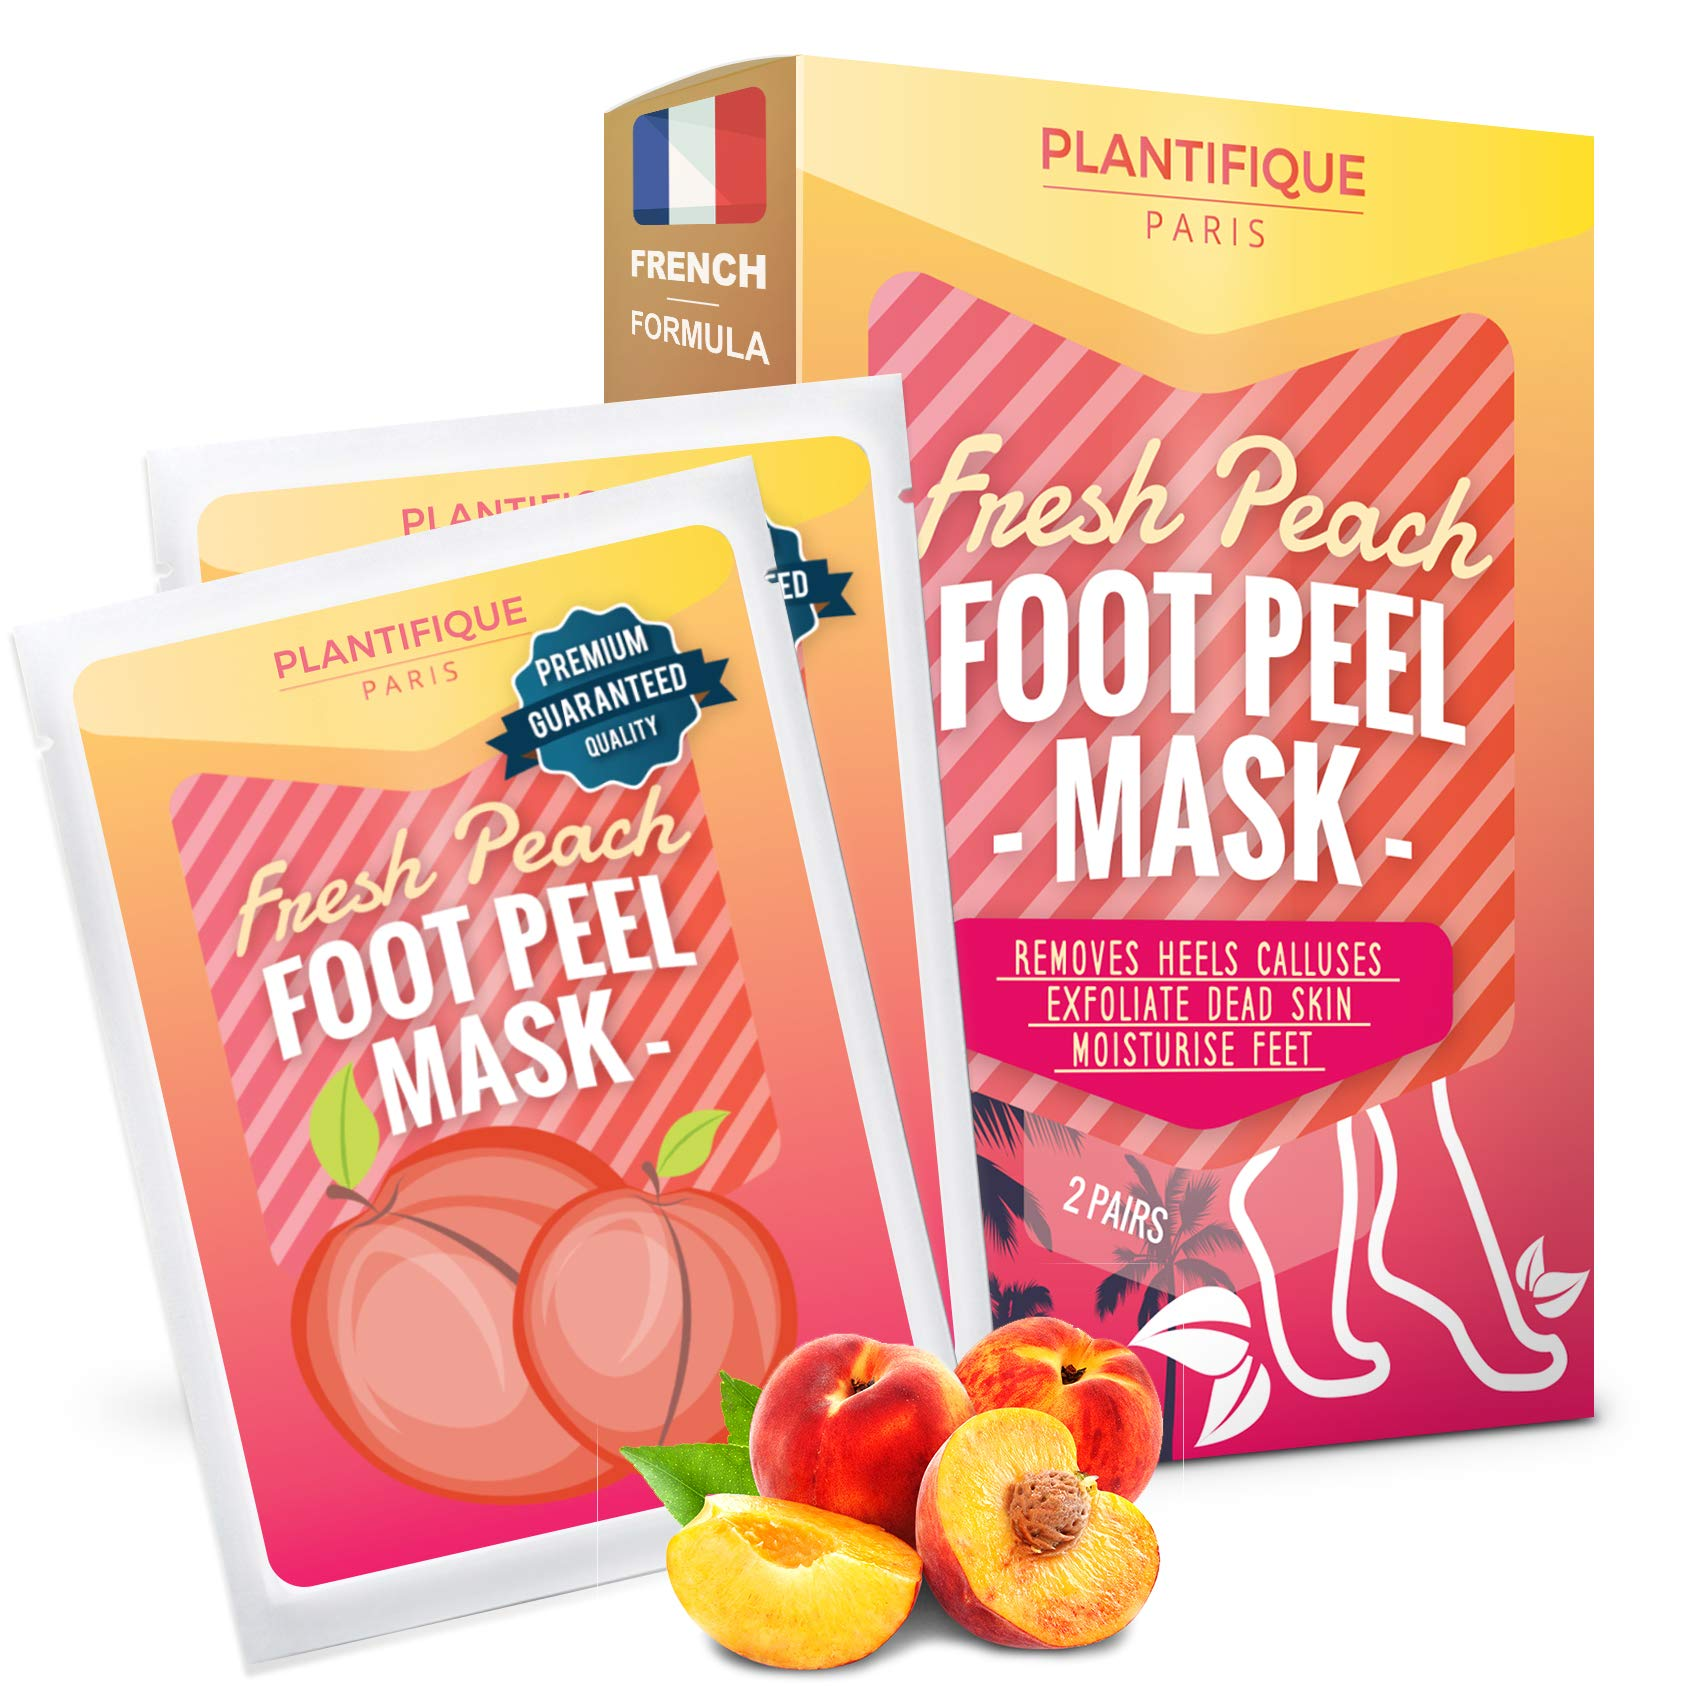 Soft Foot Exfoliating Peeling Scrub Mask -Baby Foot Peel -Removes Calluses,Dead and Dry Skin - Repairs Rough Heels in 7 Days - Peel Mask for Men and Women(Peach) - Baby Foot Baby Feet Foot Peel 2 Pack by Plantifique